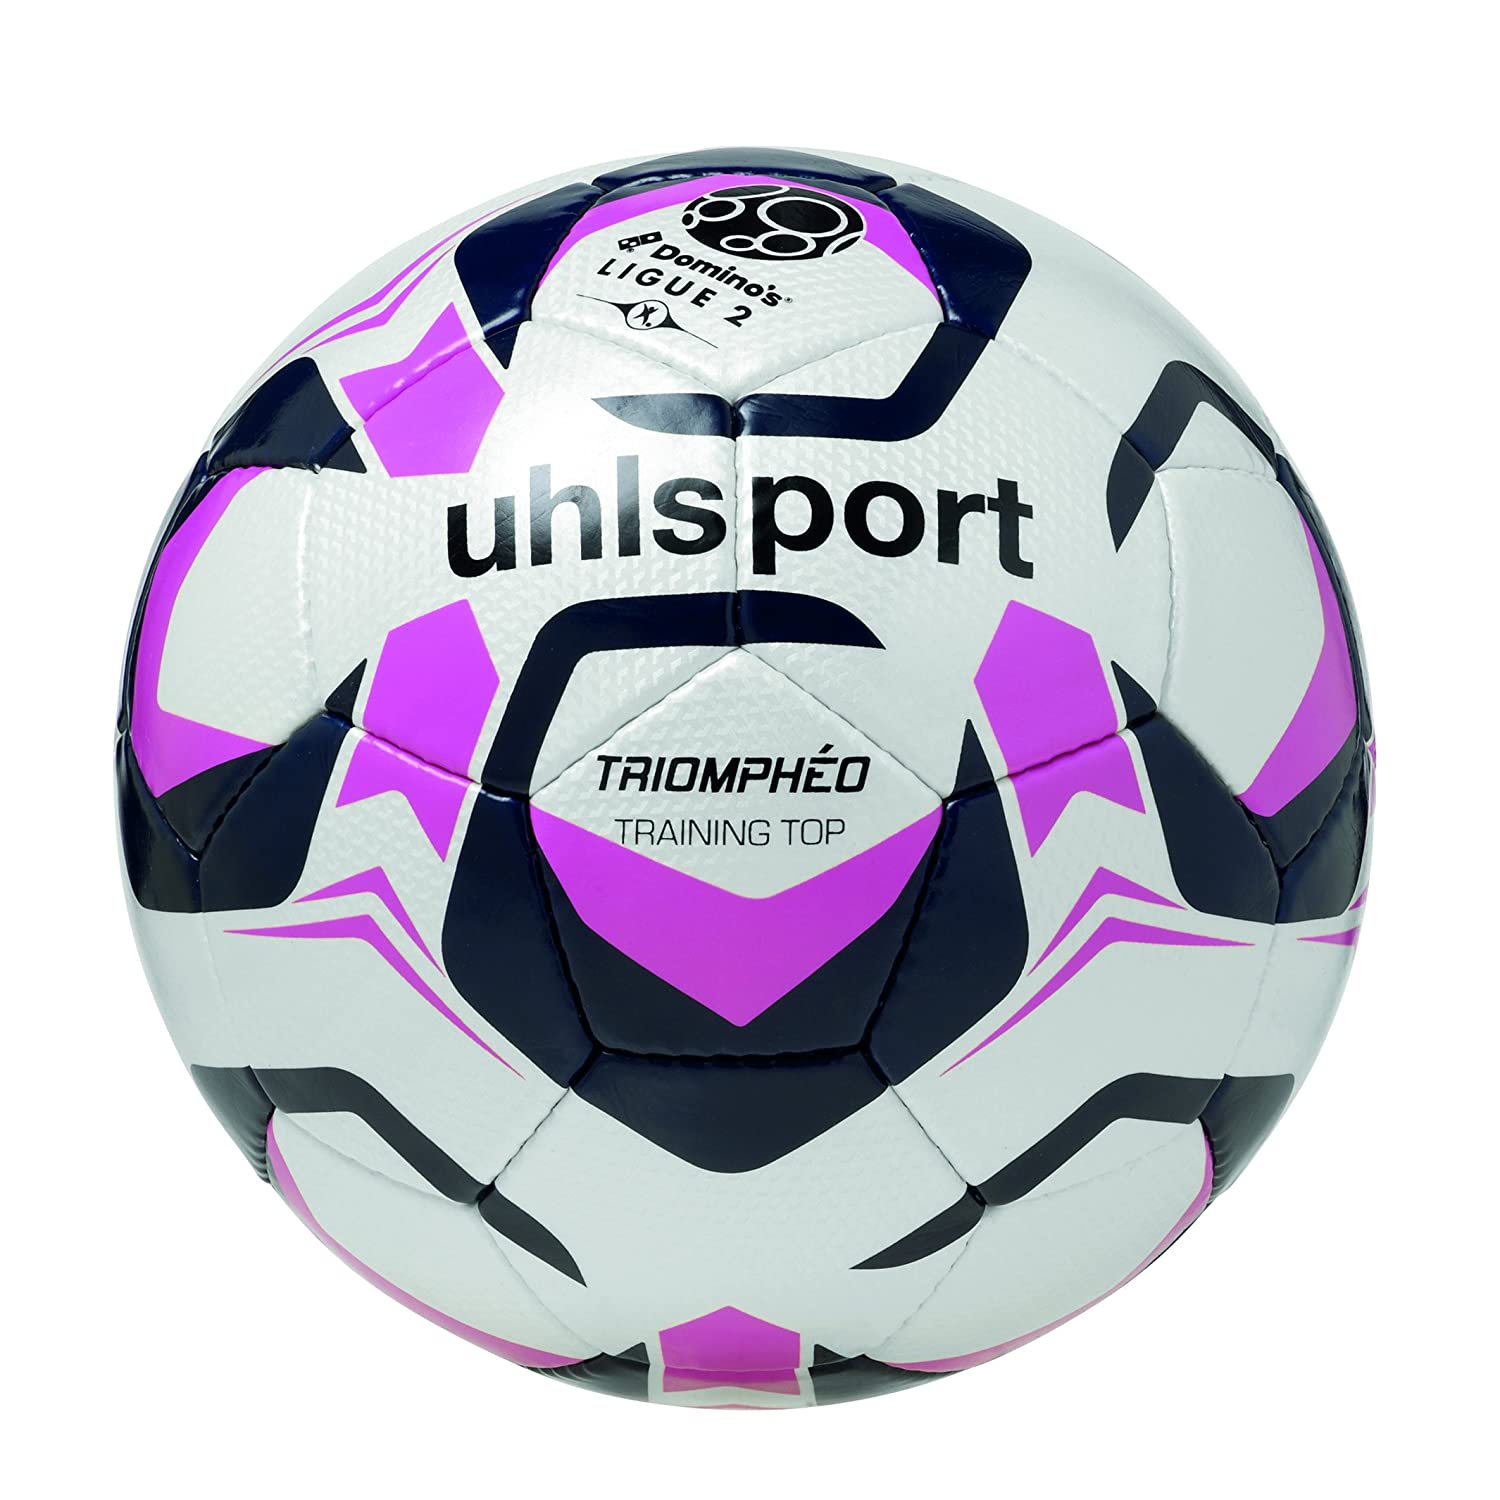 Uhlsport - triomphèo Training Top - Balón Fútbol - Performances ...